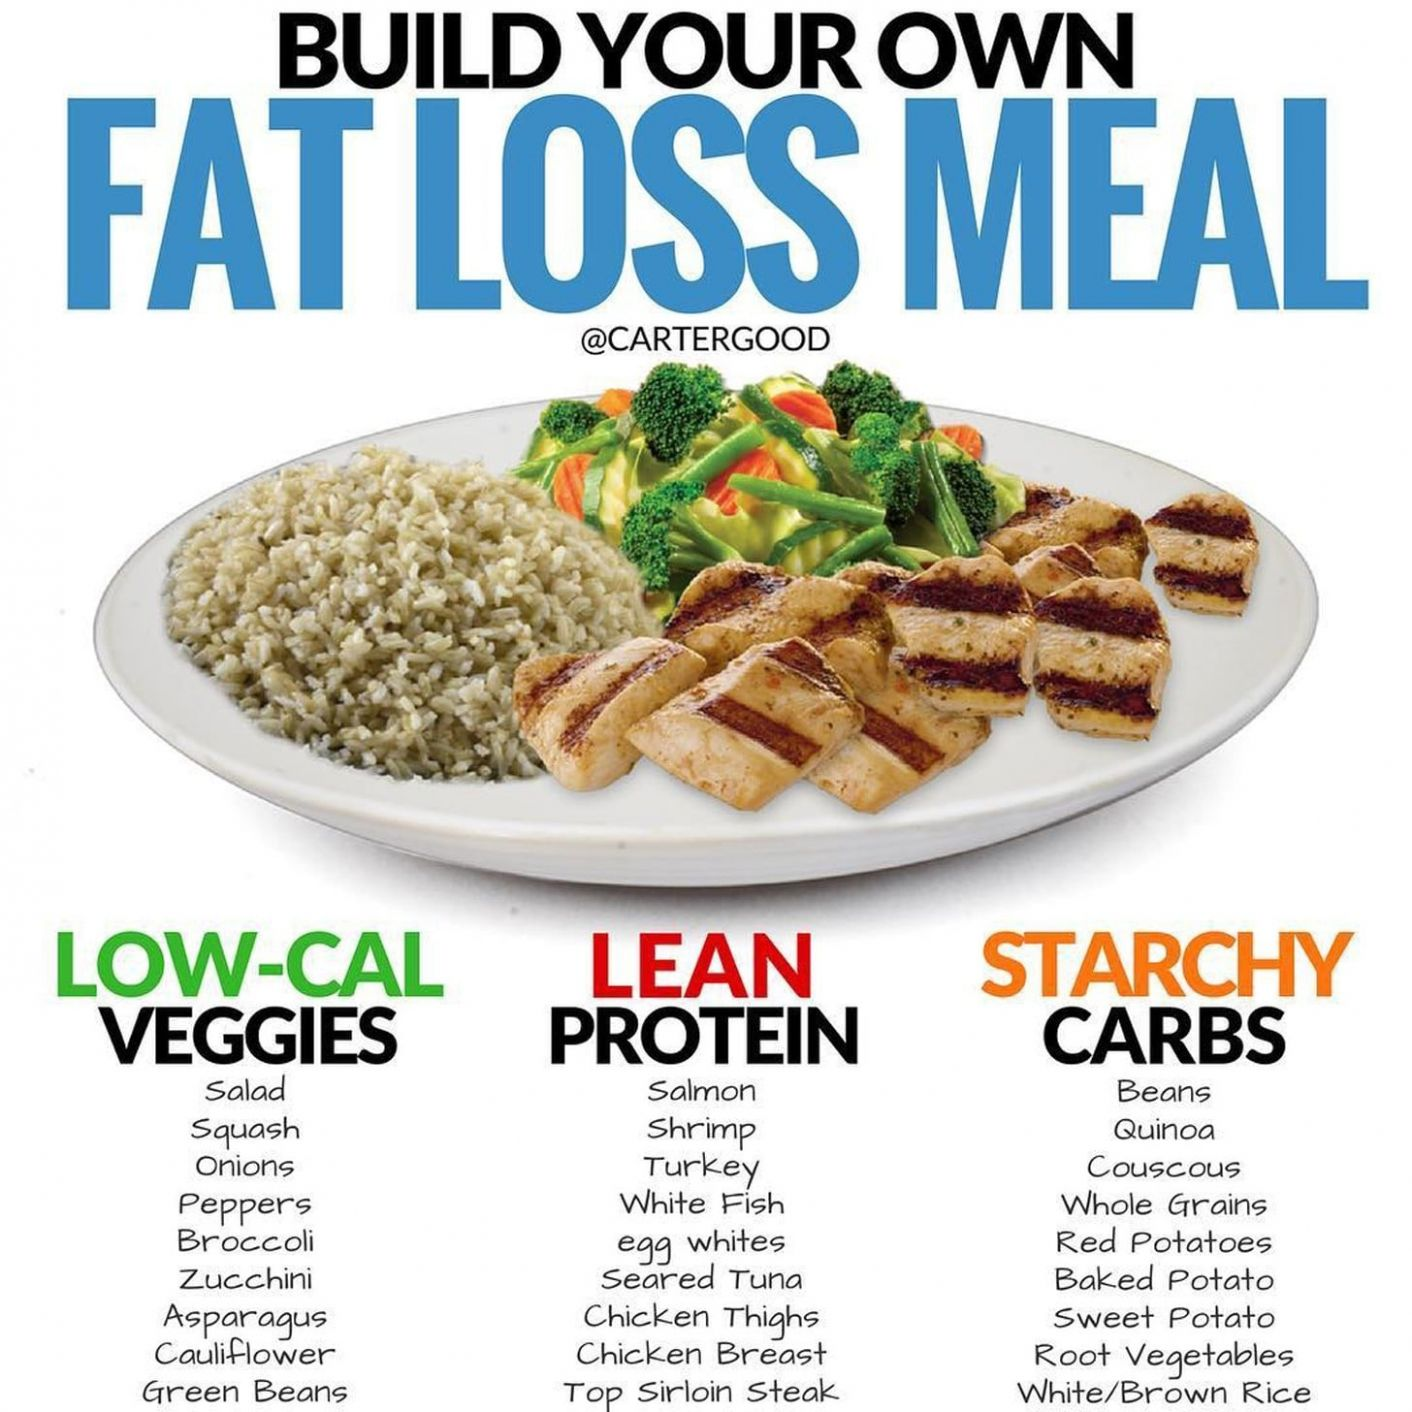 Meal Ideas For Weight Loss | POPSUGAR Fitness